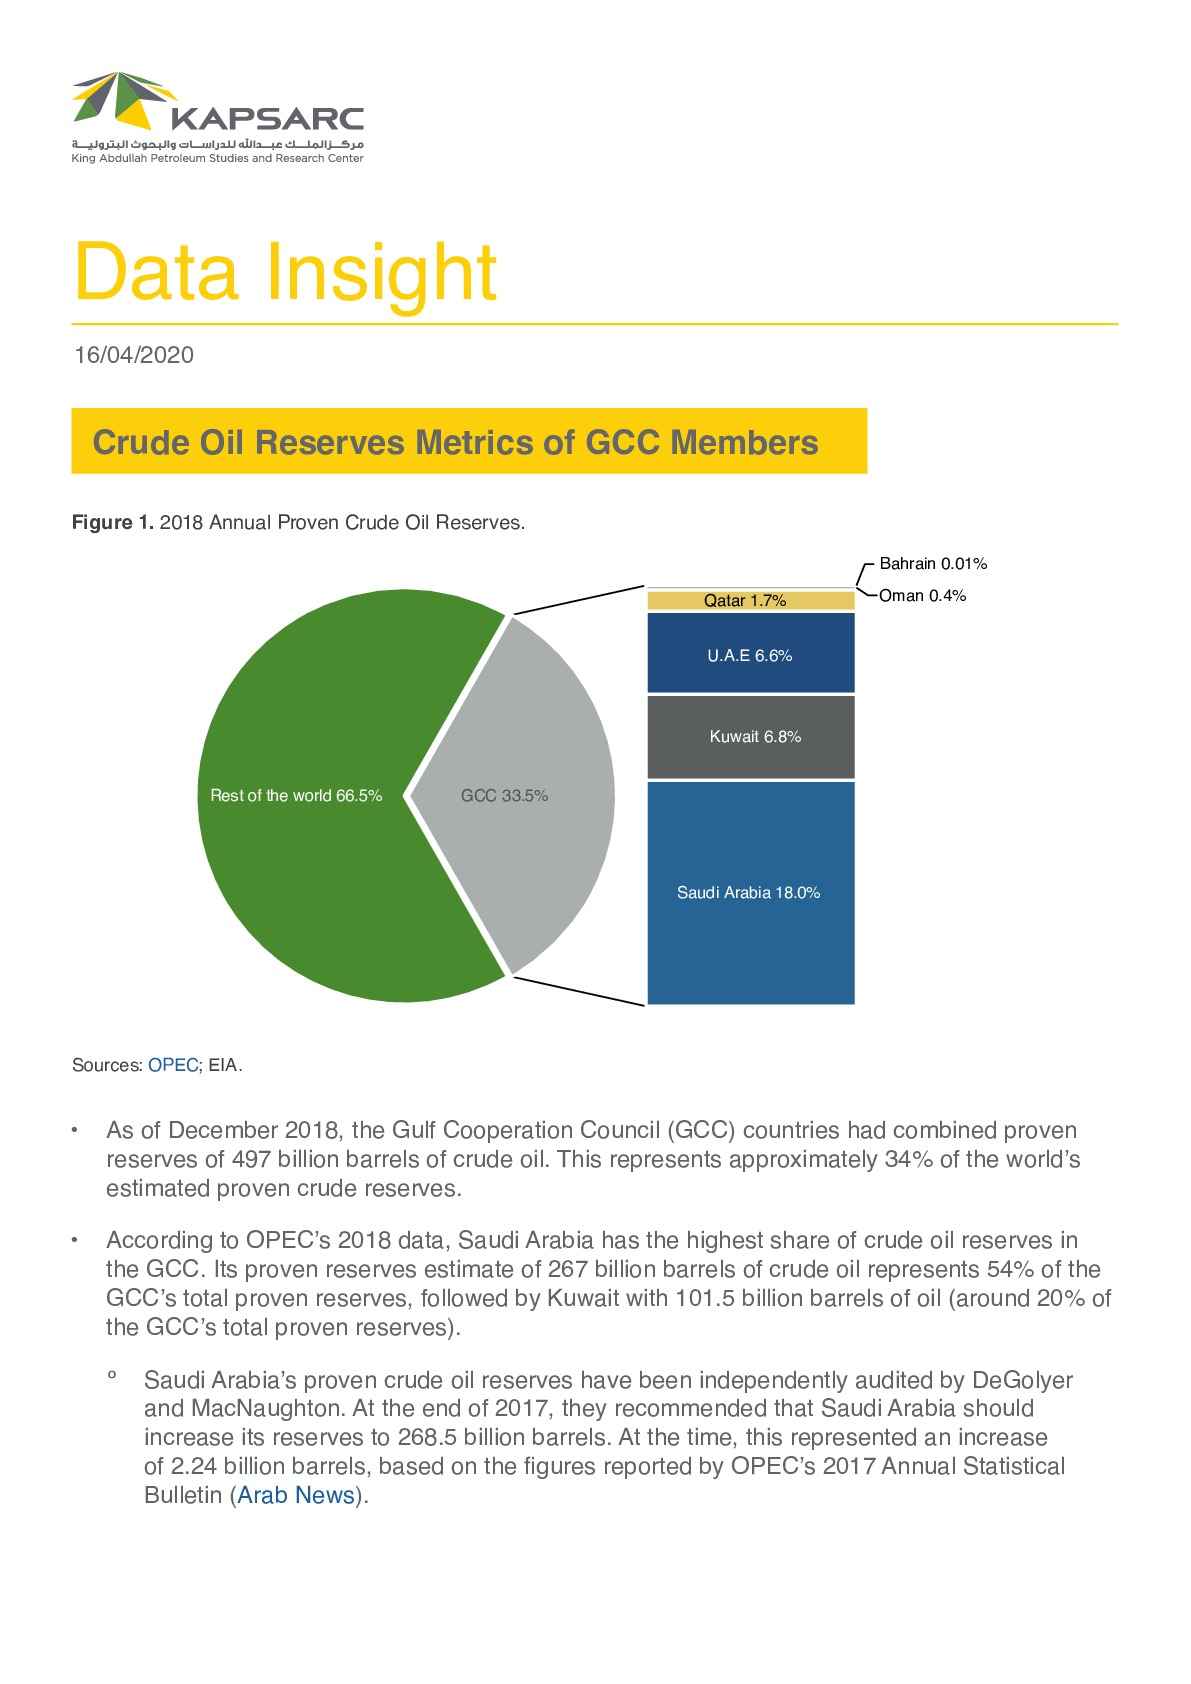 Crude Oil Reserves Metrics of GCC Members